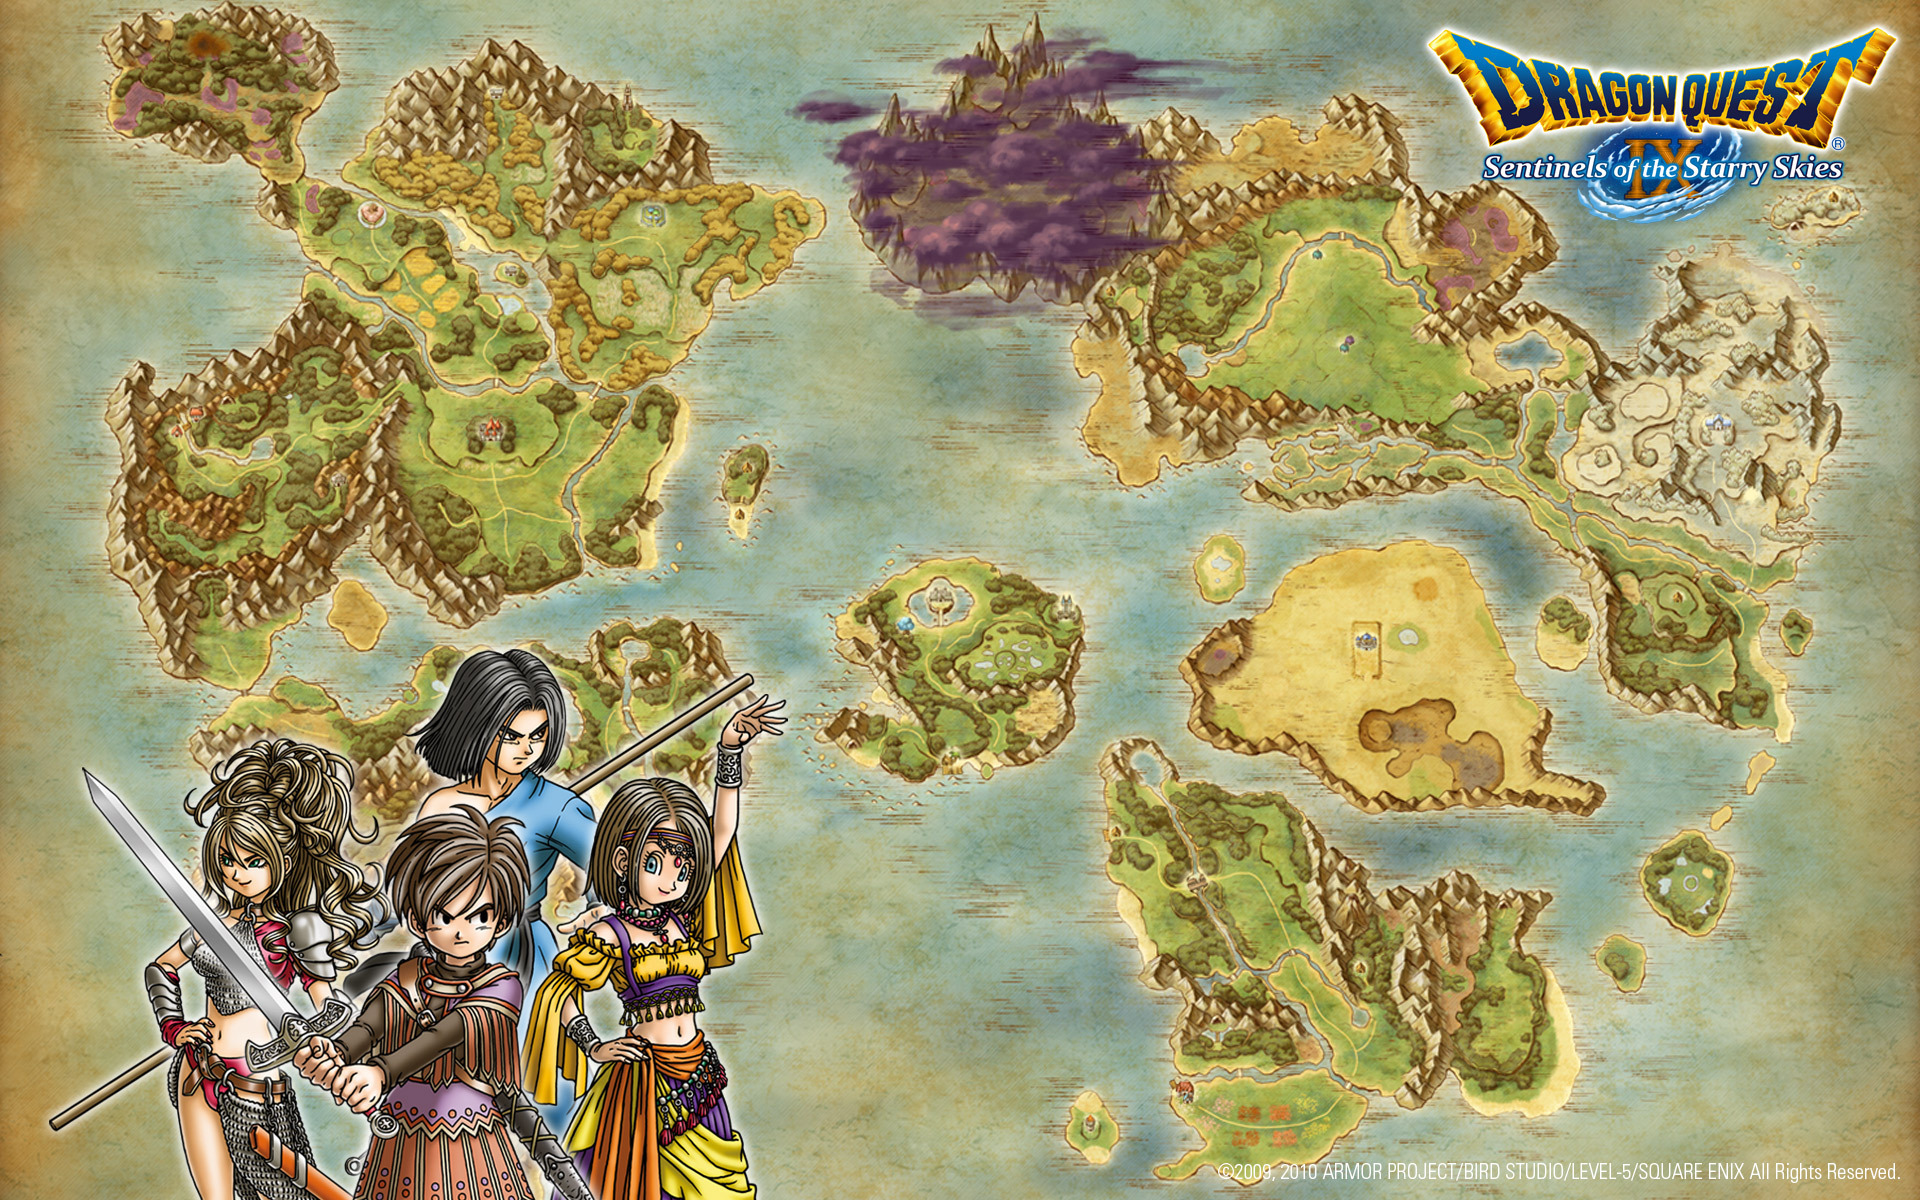 Dragon Quest Ix Sentinels Of The Starry Skies Images Dragon Quest